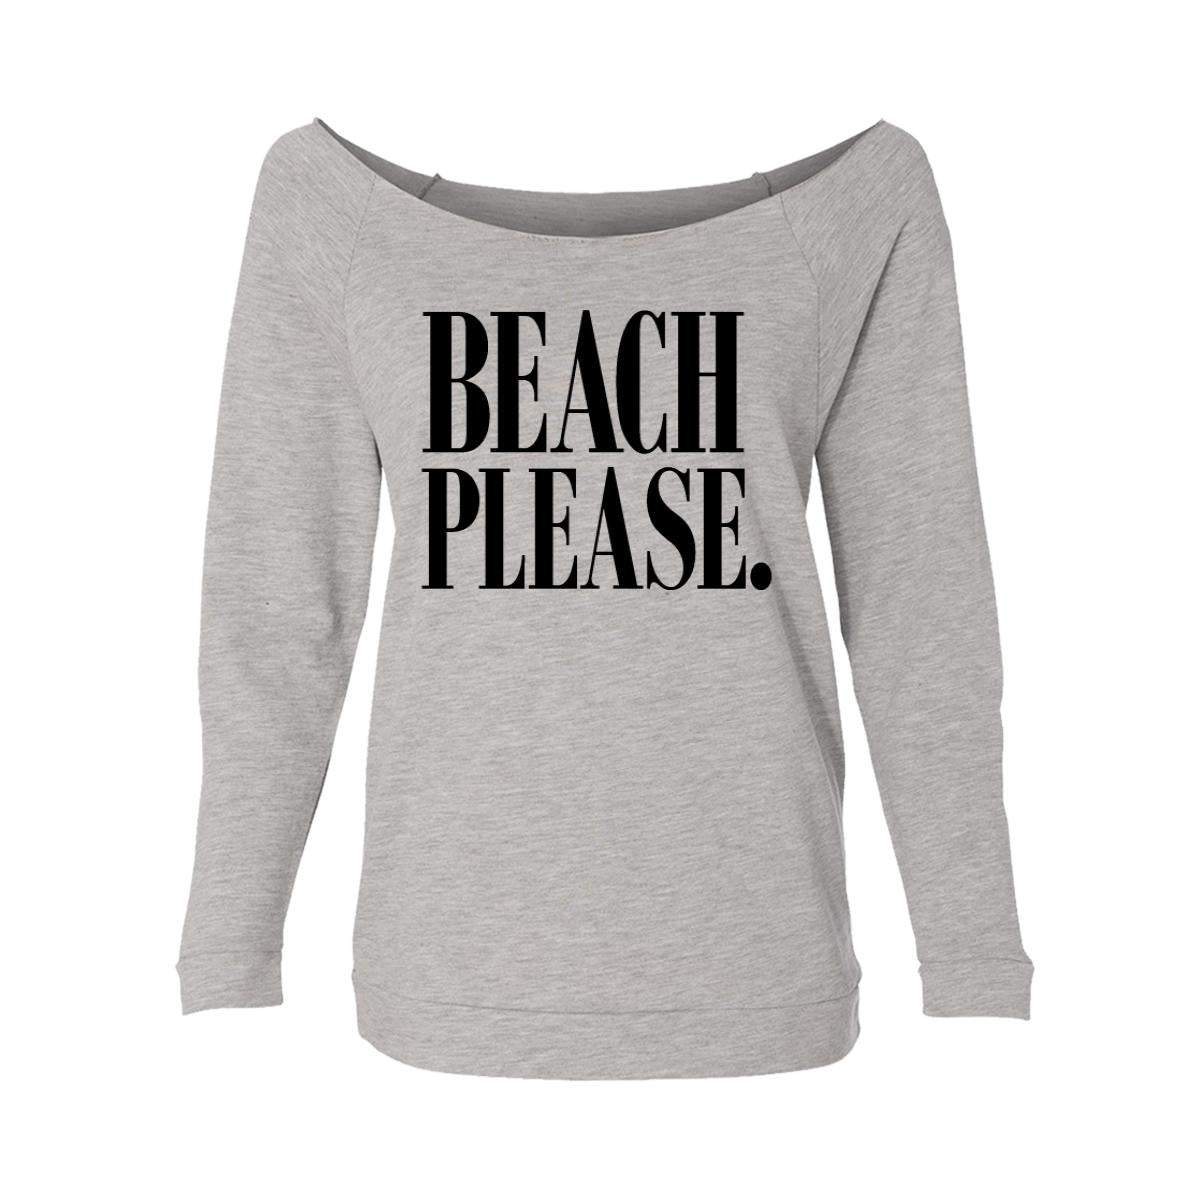 2e03009d6f13 Beach Please. Womens Raw-Edge Scoop Neck Sweater - Moment Gear